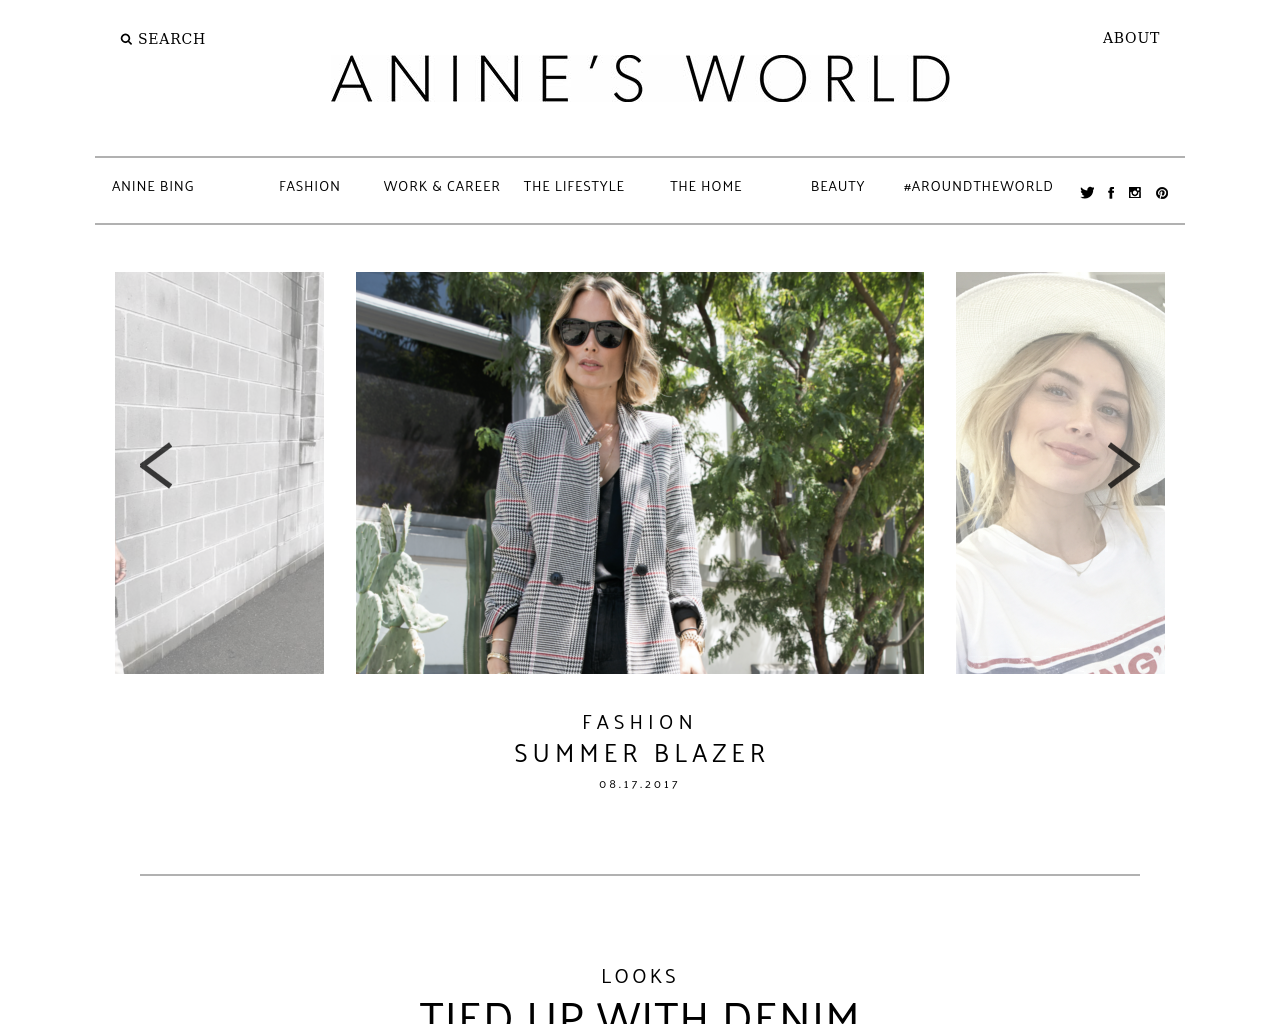 Anine's-World-Advertising-Reviews-Pricing